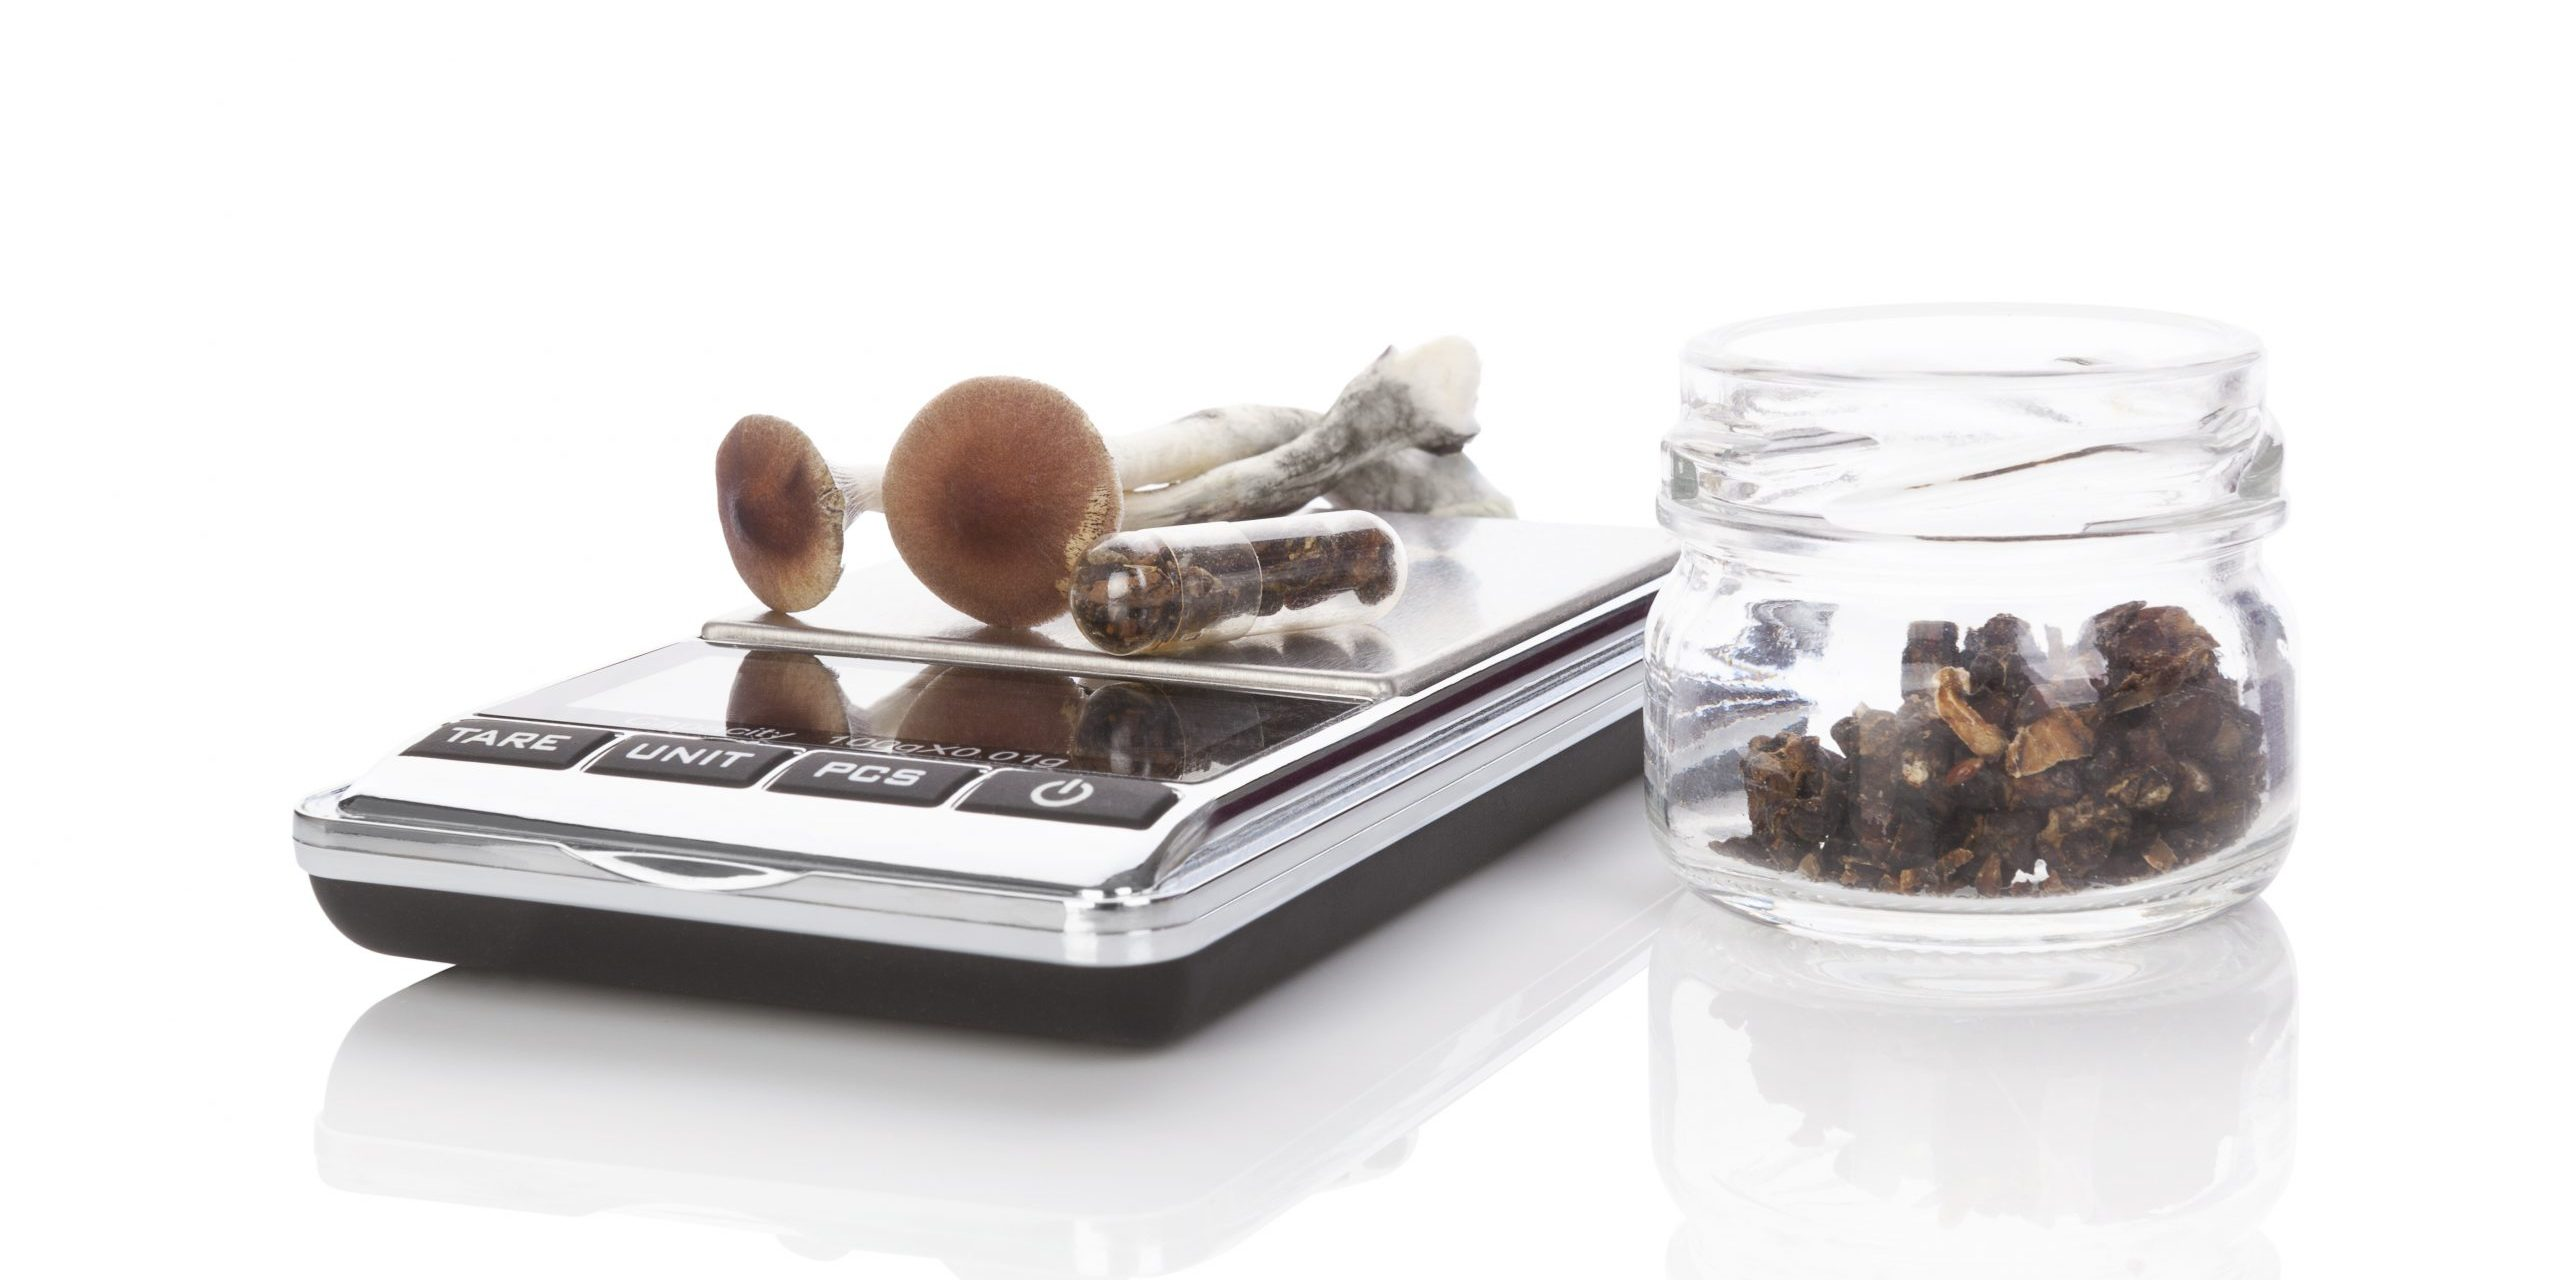 microdosing psilocybin the active ingredient in magic mushrooms - shrooms, using a microscale to create microdoses inside capsules